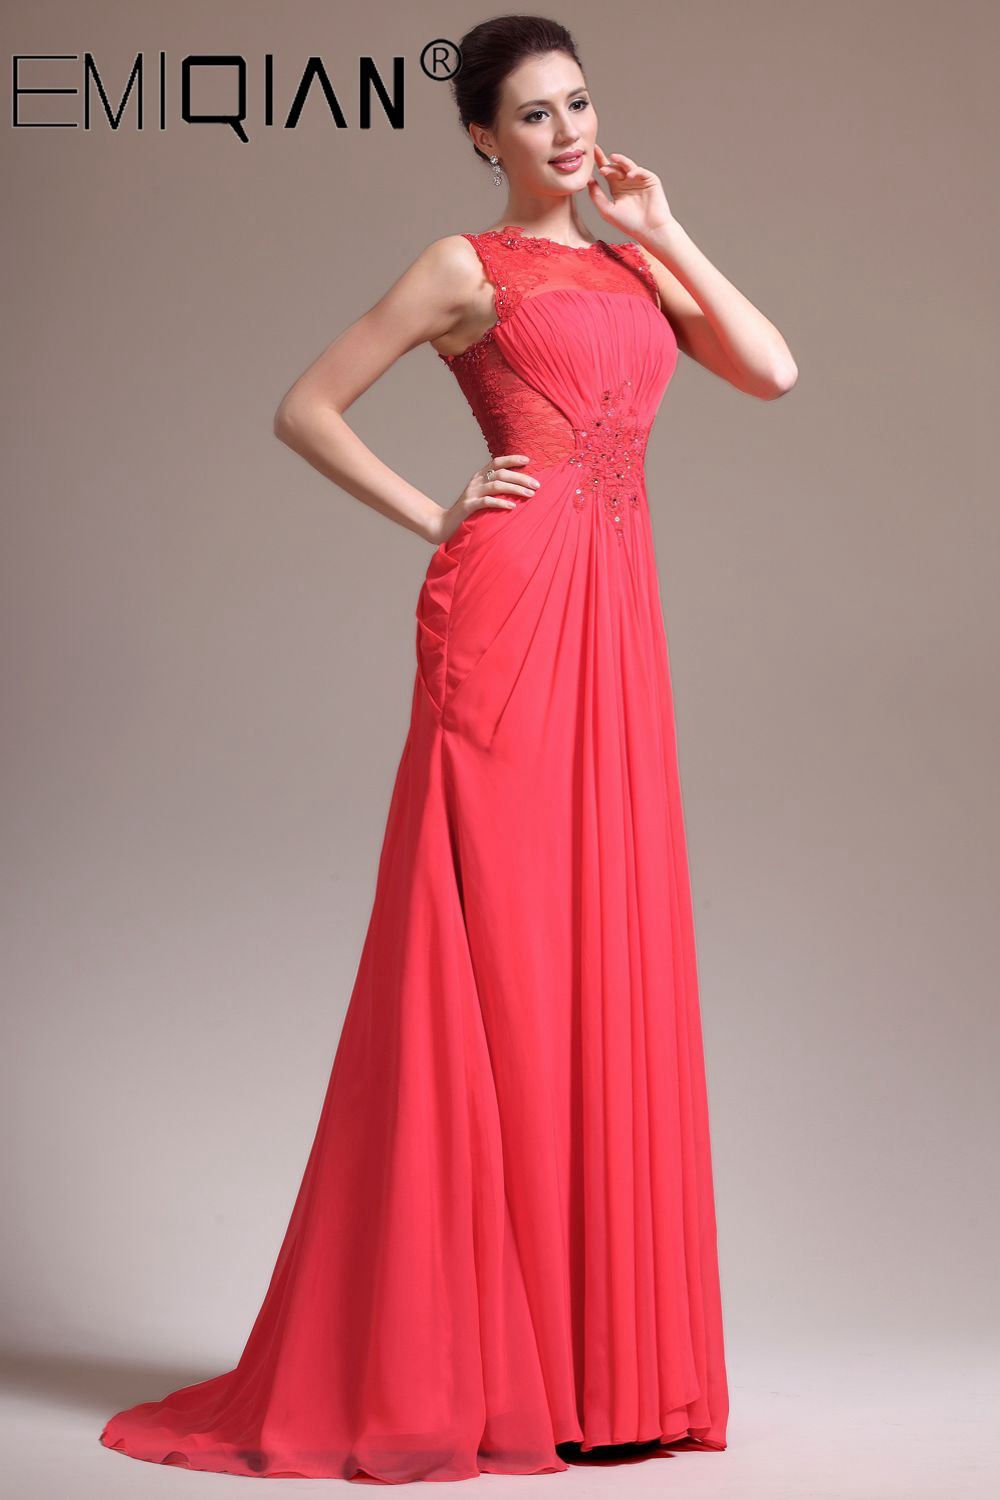 Womens Elegant Floral Lace Chiffon Pleated Formal Evening Gown Wedding Party Prom A-Line Maxi Long Dress